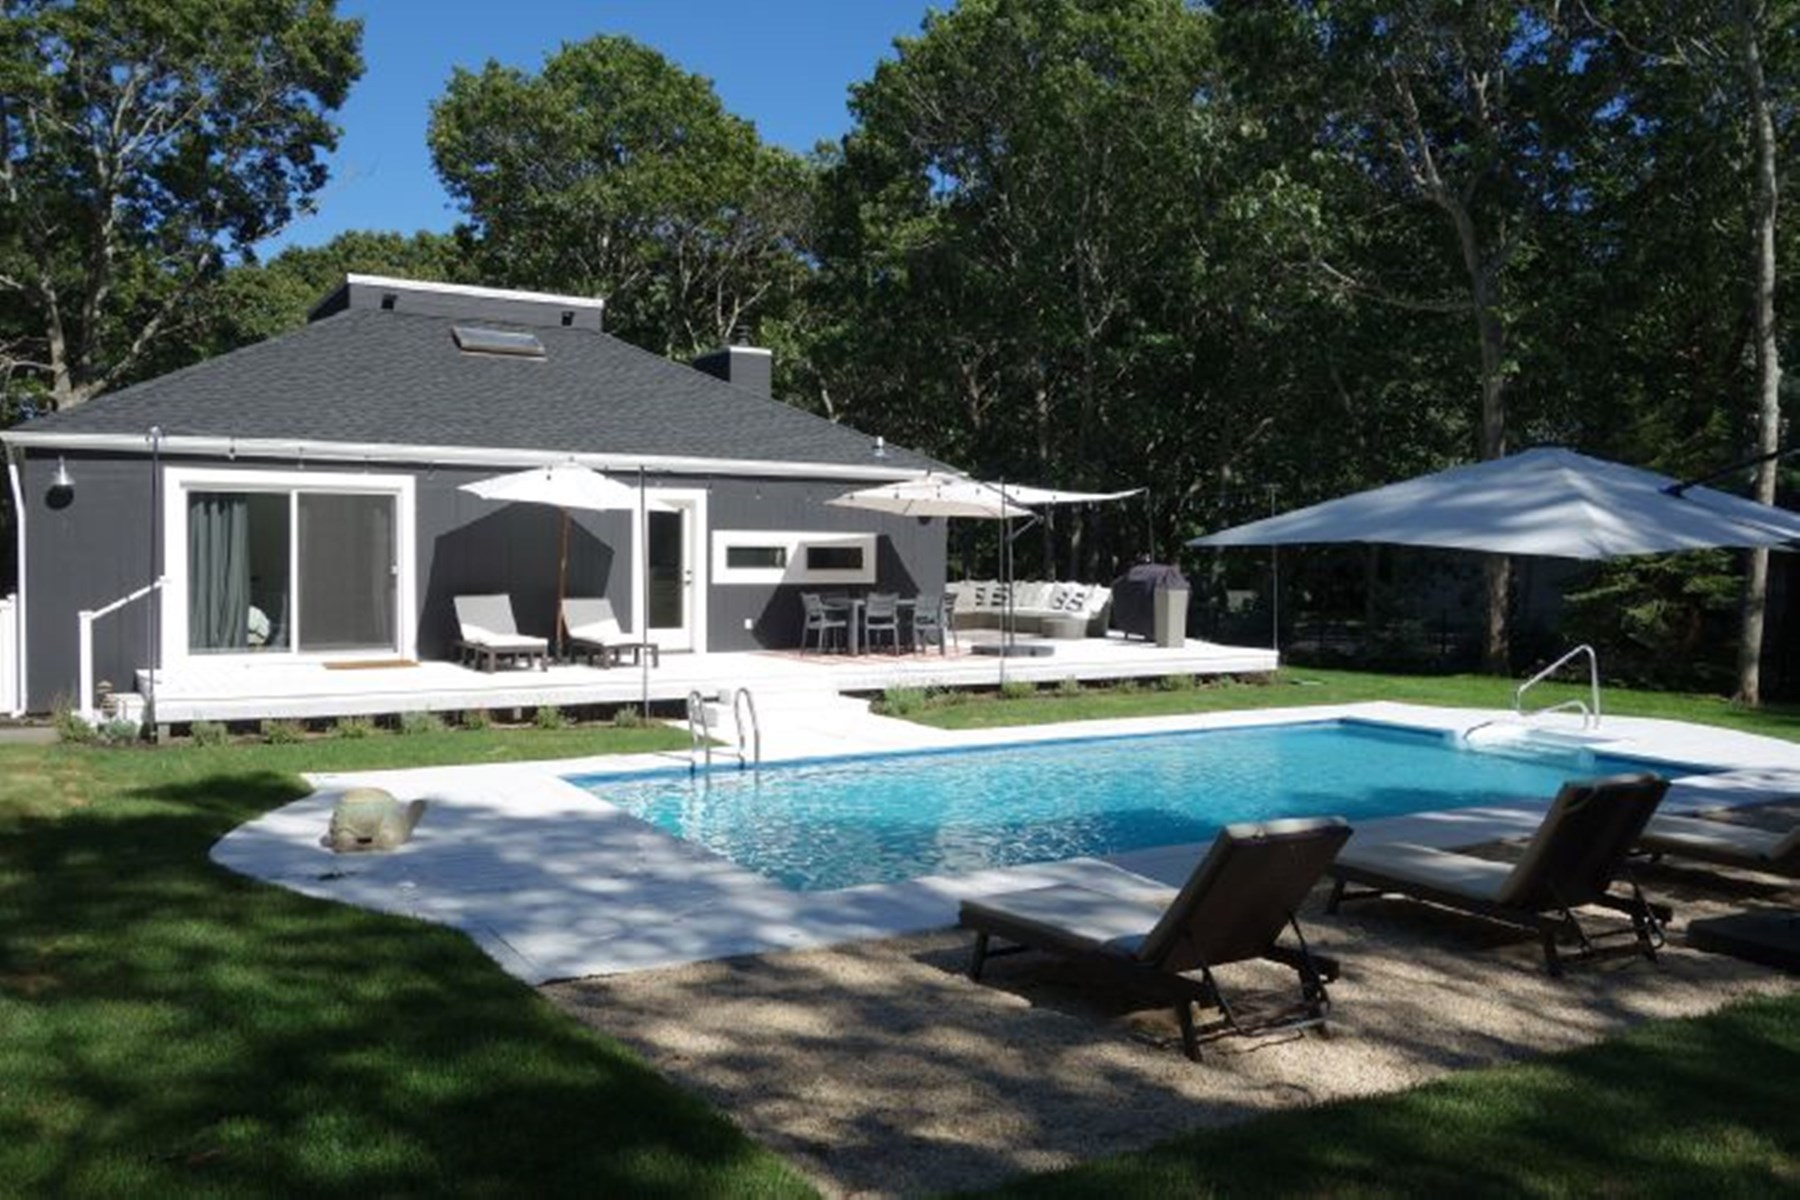 Single Family Home for Rent at Renovated Gem in Bridgehampton Bridgehampton, New York 11932 United States